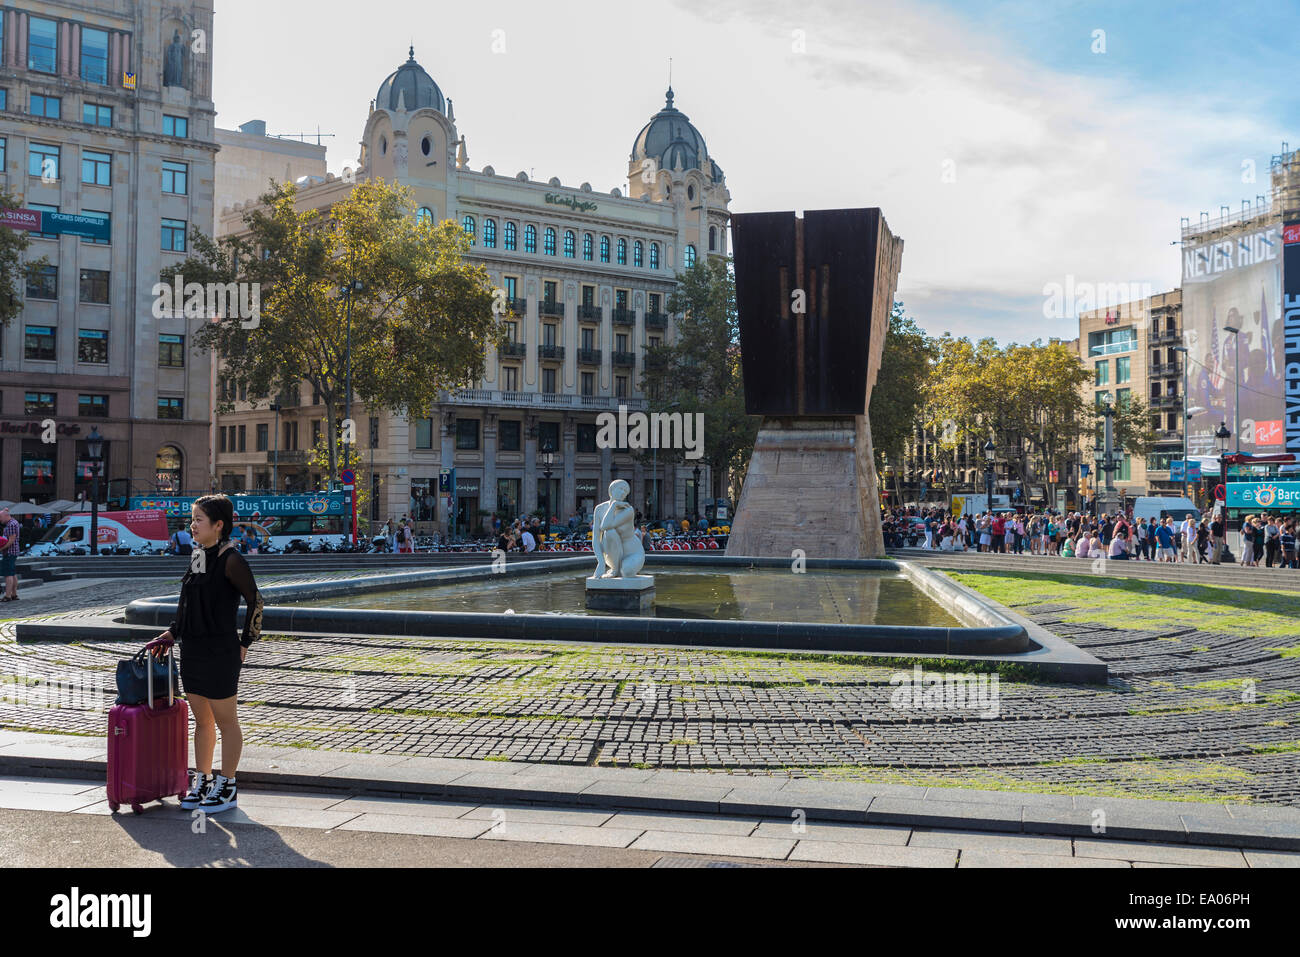 Placa Catalunya And The Back Of The Monument To Francesc Macia In